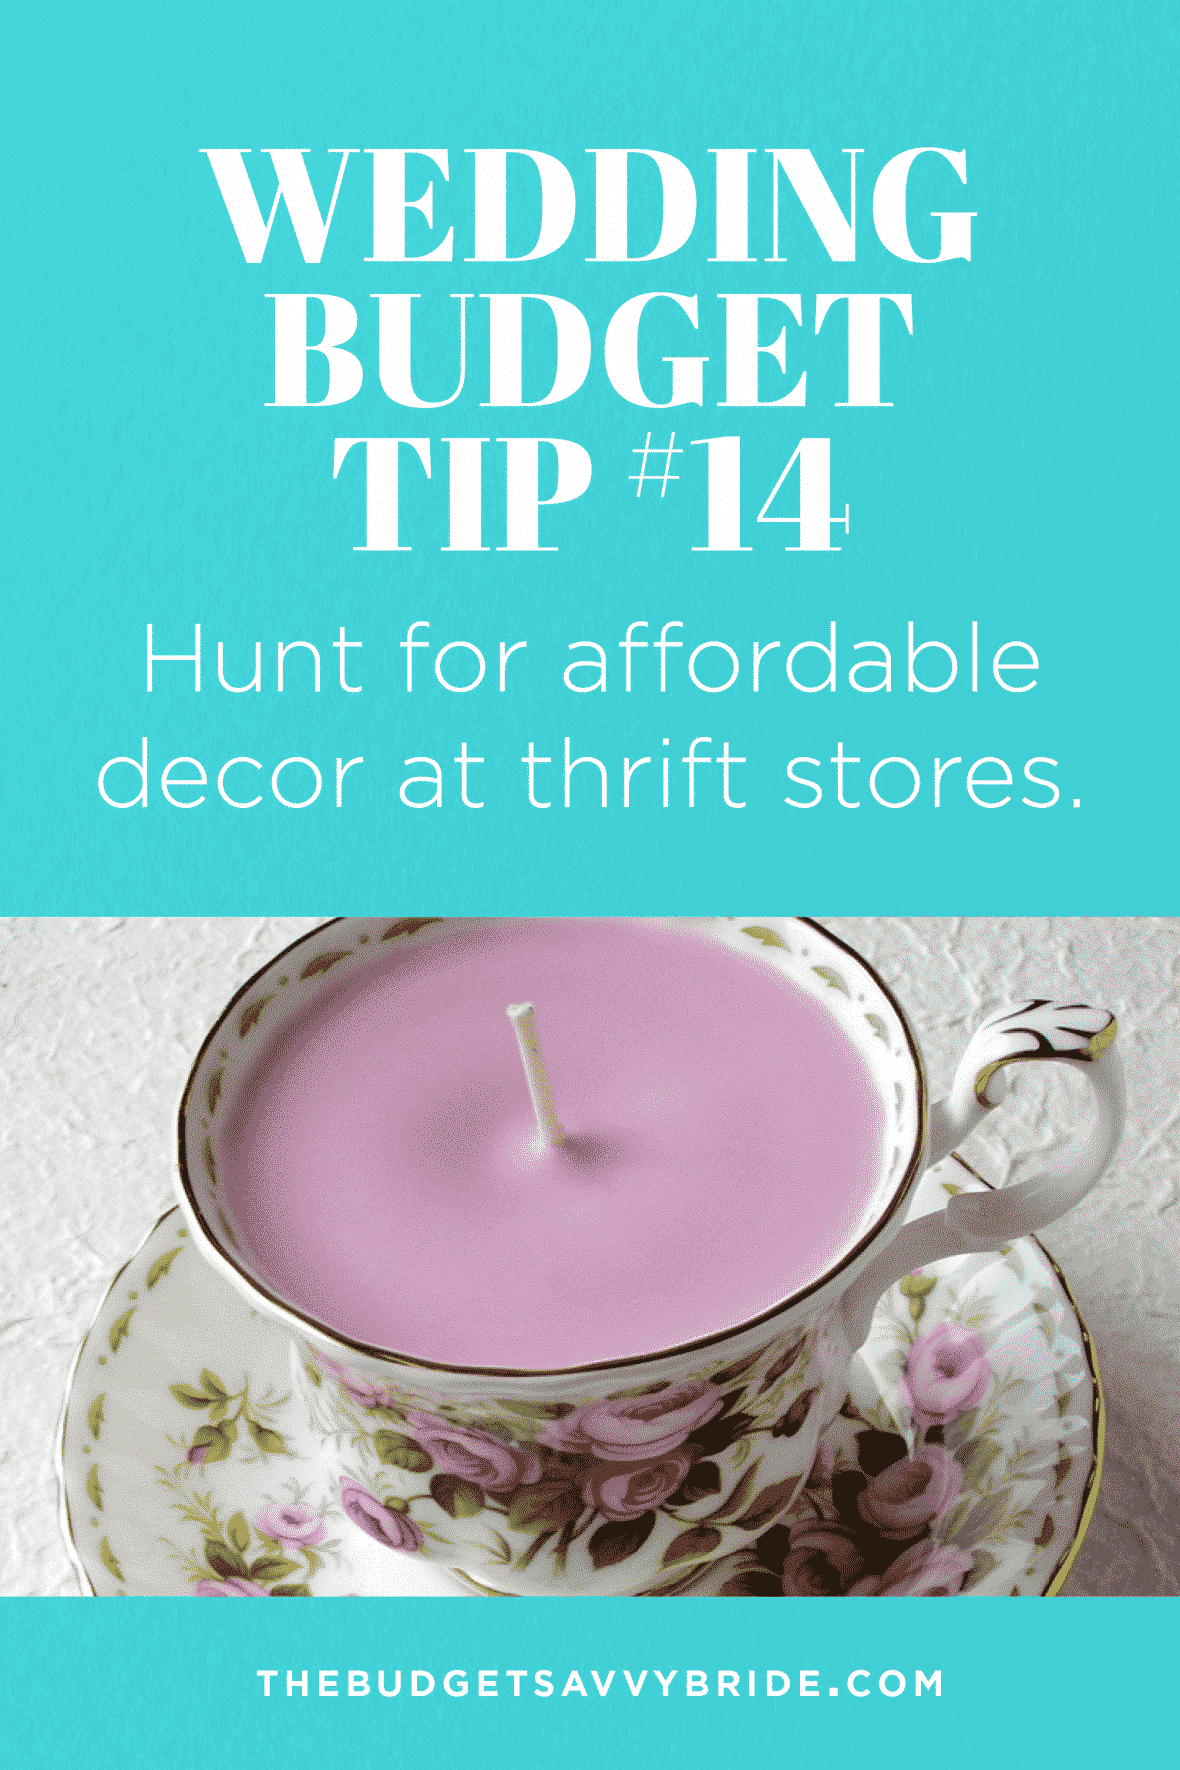 Wedding Budget Tip: Shop at thrift stores for wedding items to save money on your wedding. You can easily give inexpensive items a makeover with DIY!